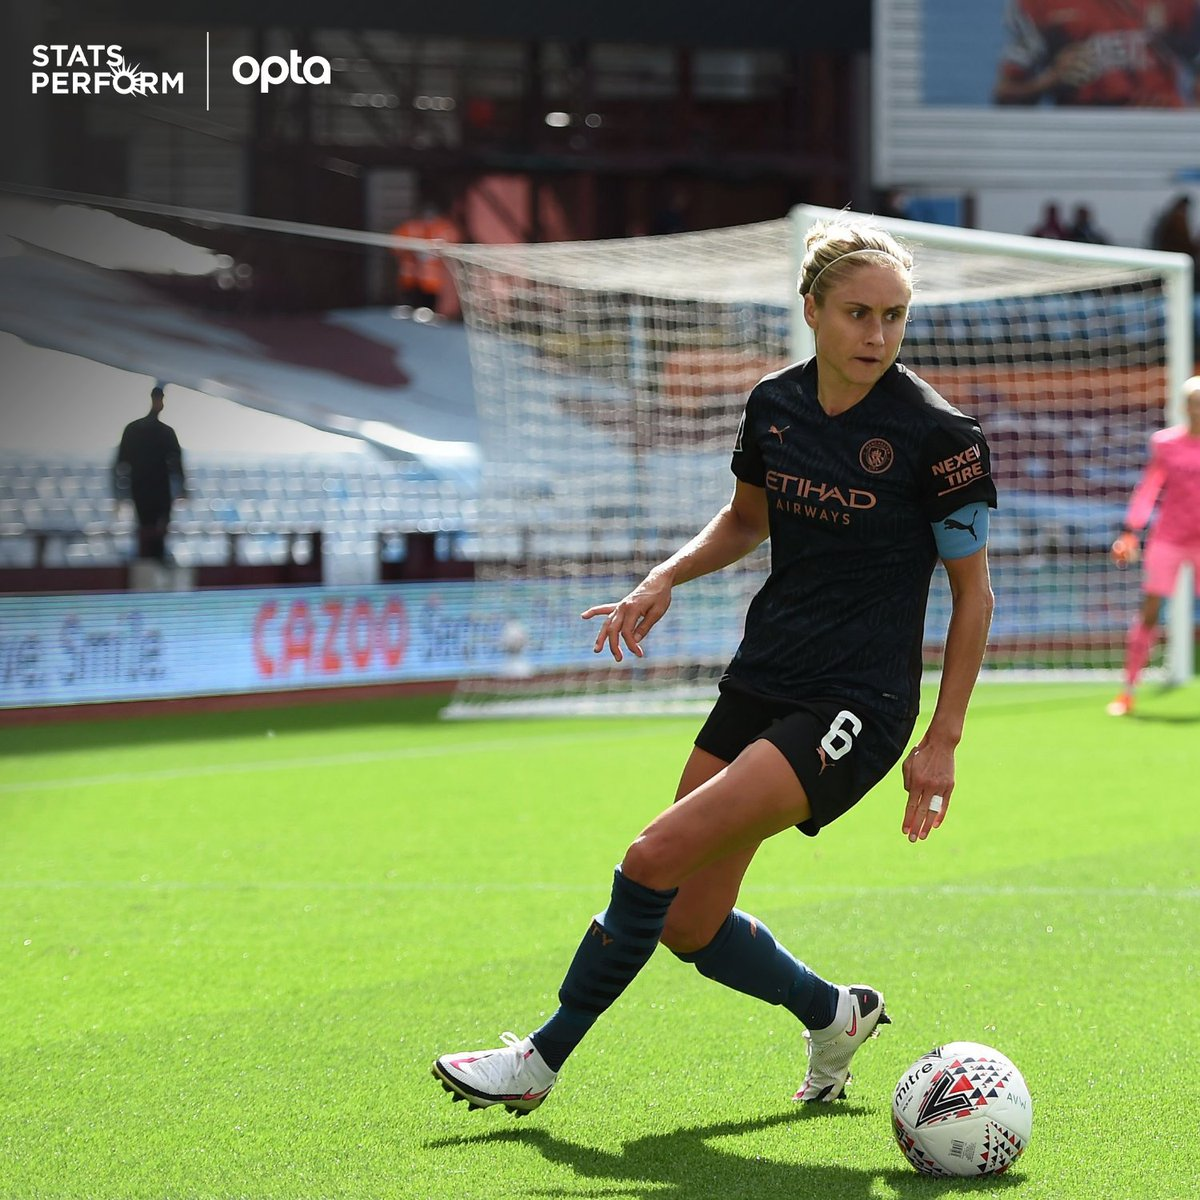 100 – Steph Houghton has become the first player in @BarclaysFAWSL history to register 100 victories, doing so in just 140 appearances. Landmark. https://t.co/slIdAxHMmG